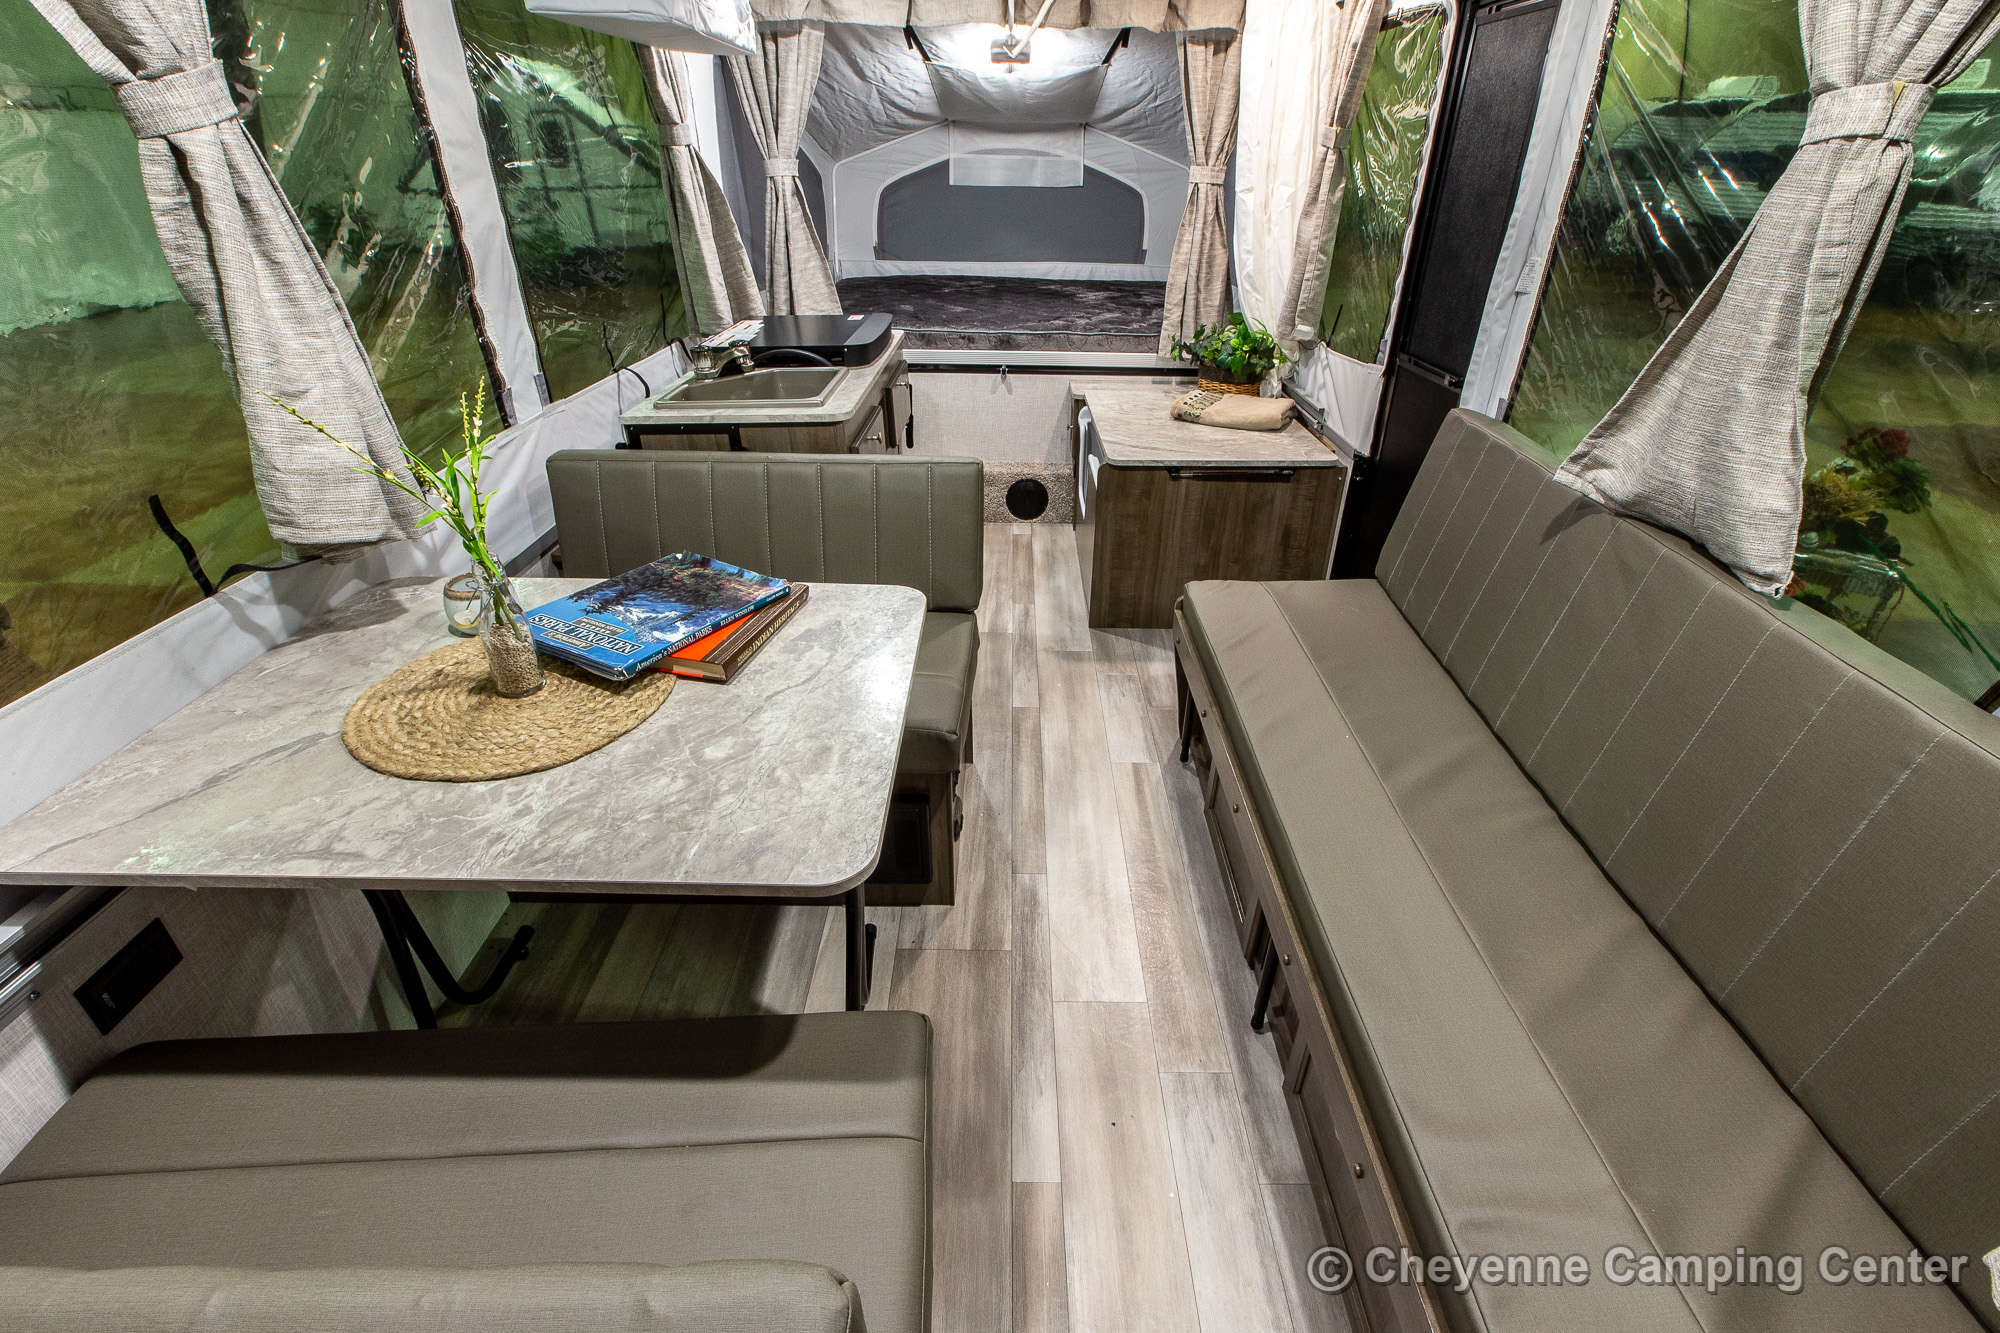 2022 Forest River Flagstaff Sports Enthusiast 228BHSE Folding Camper Interior Image